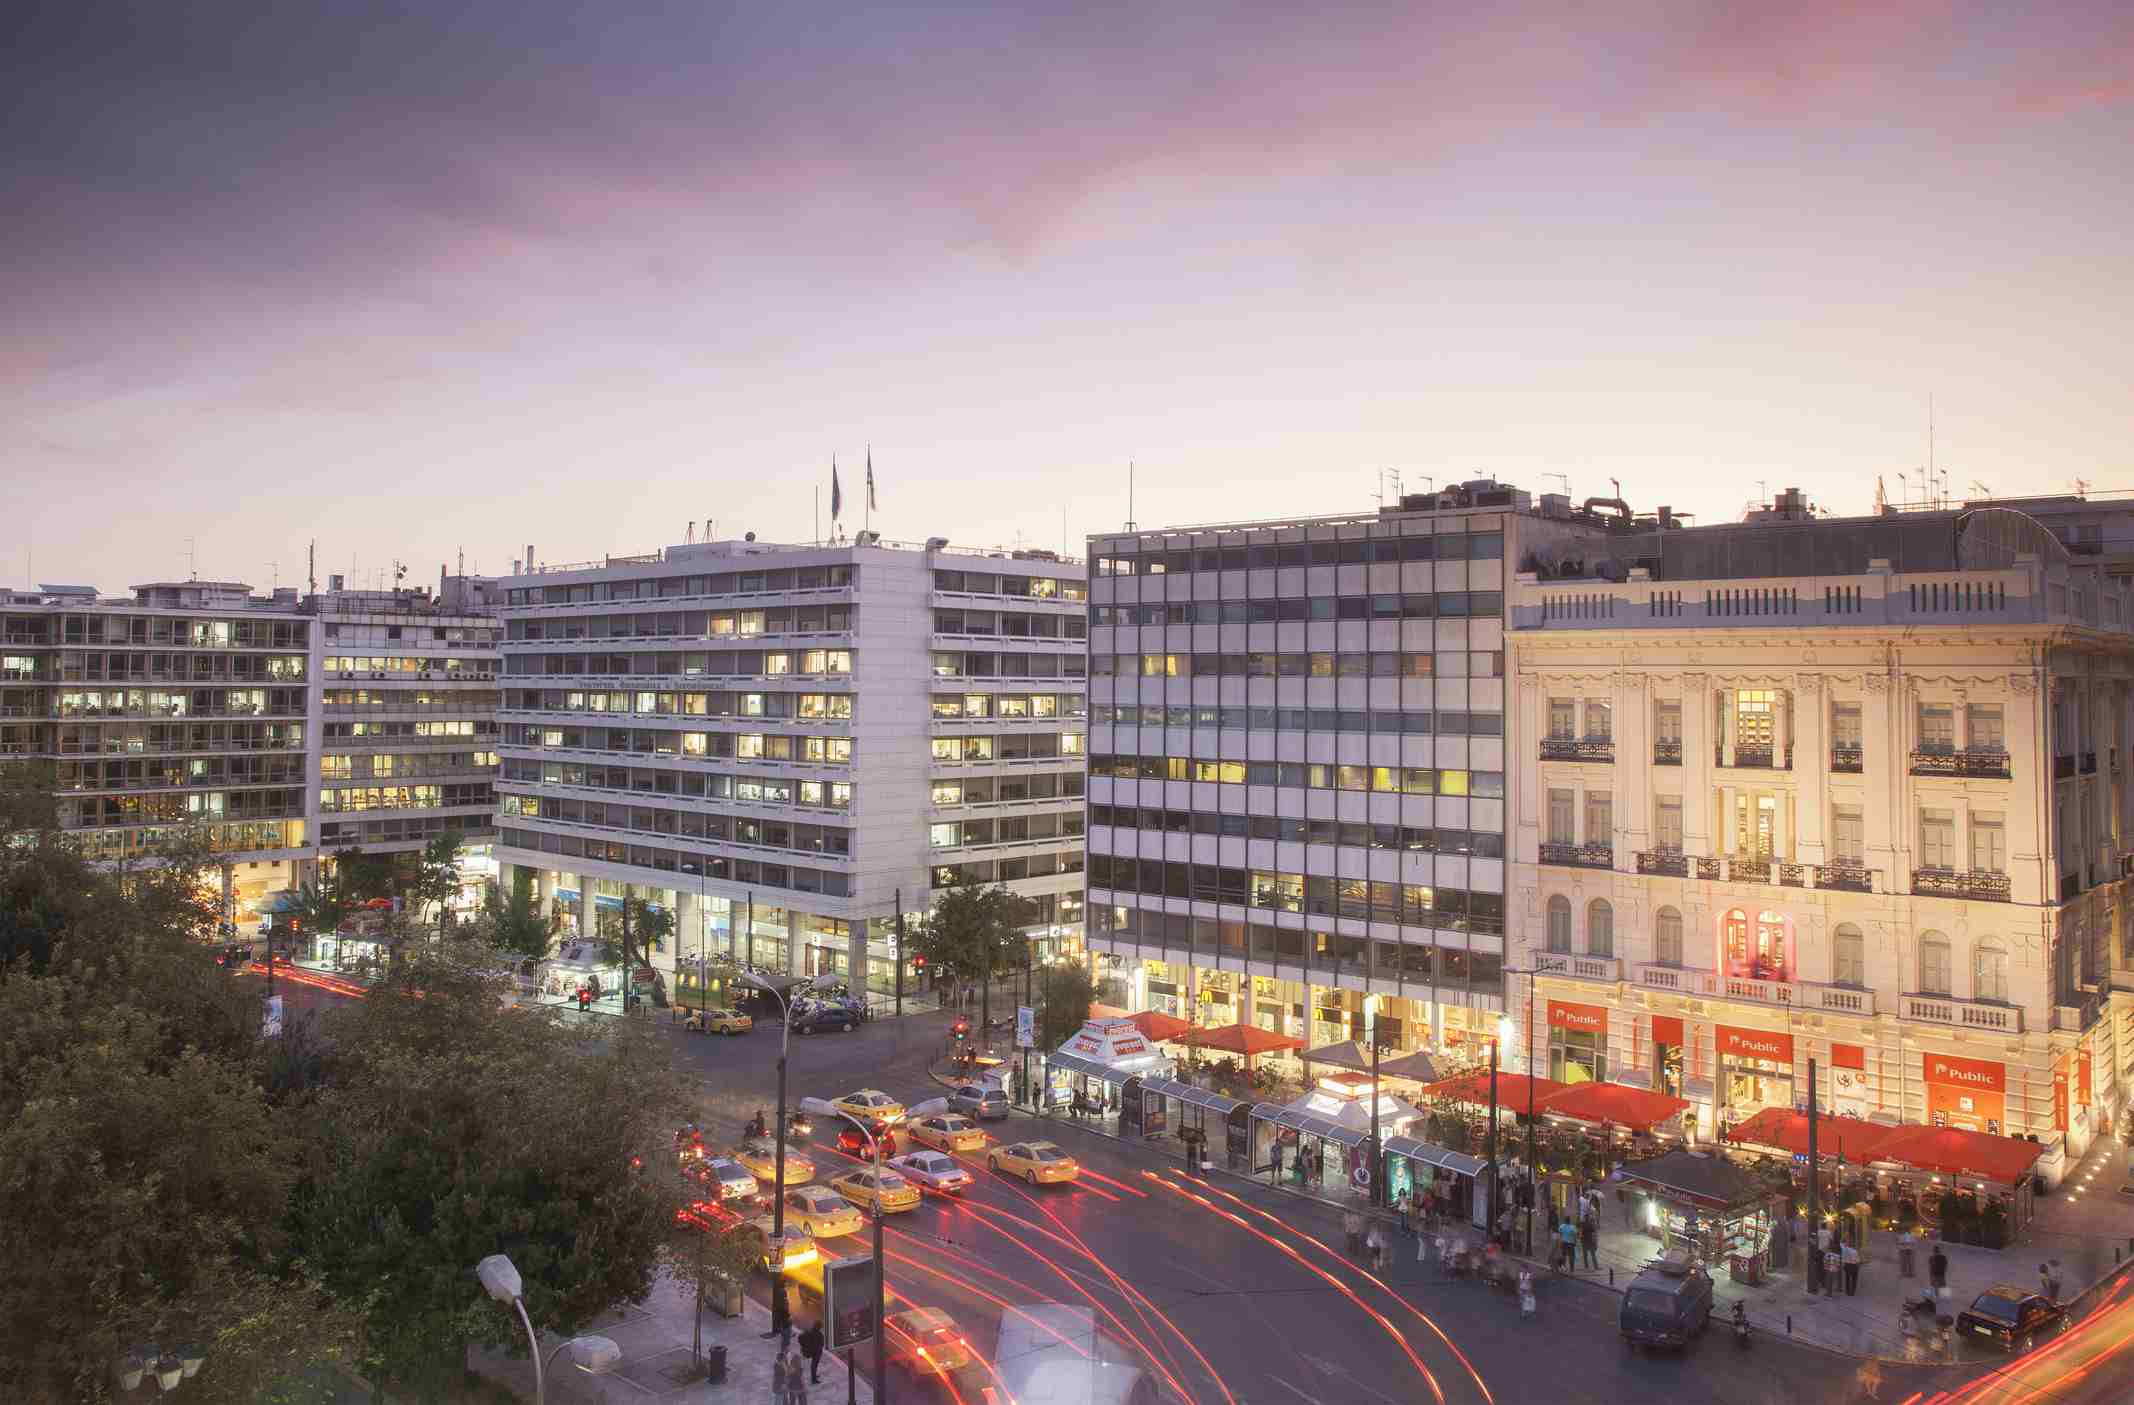 Taxis in Syntagma Square at dusk, Athens, Greece